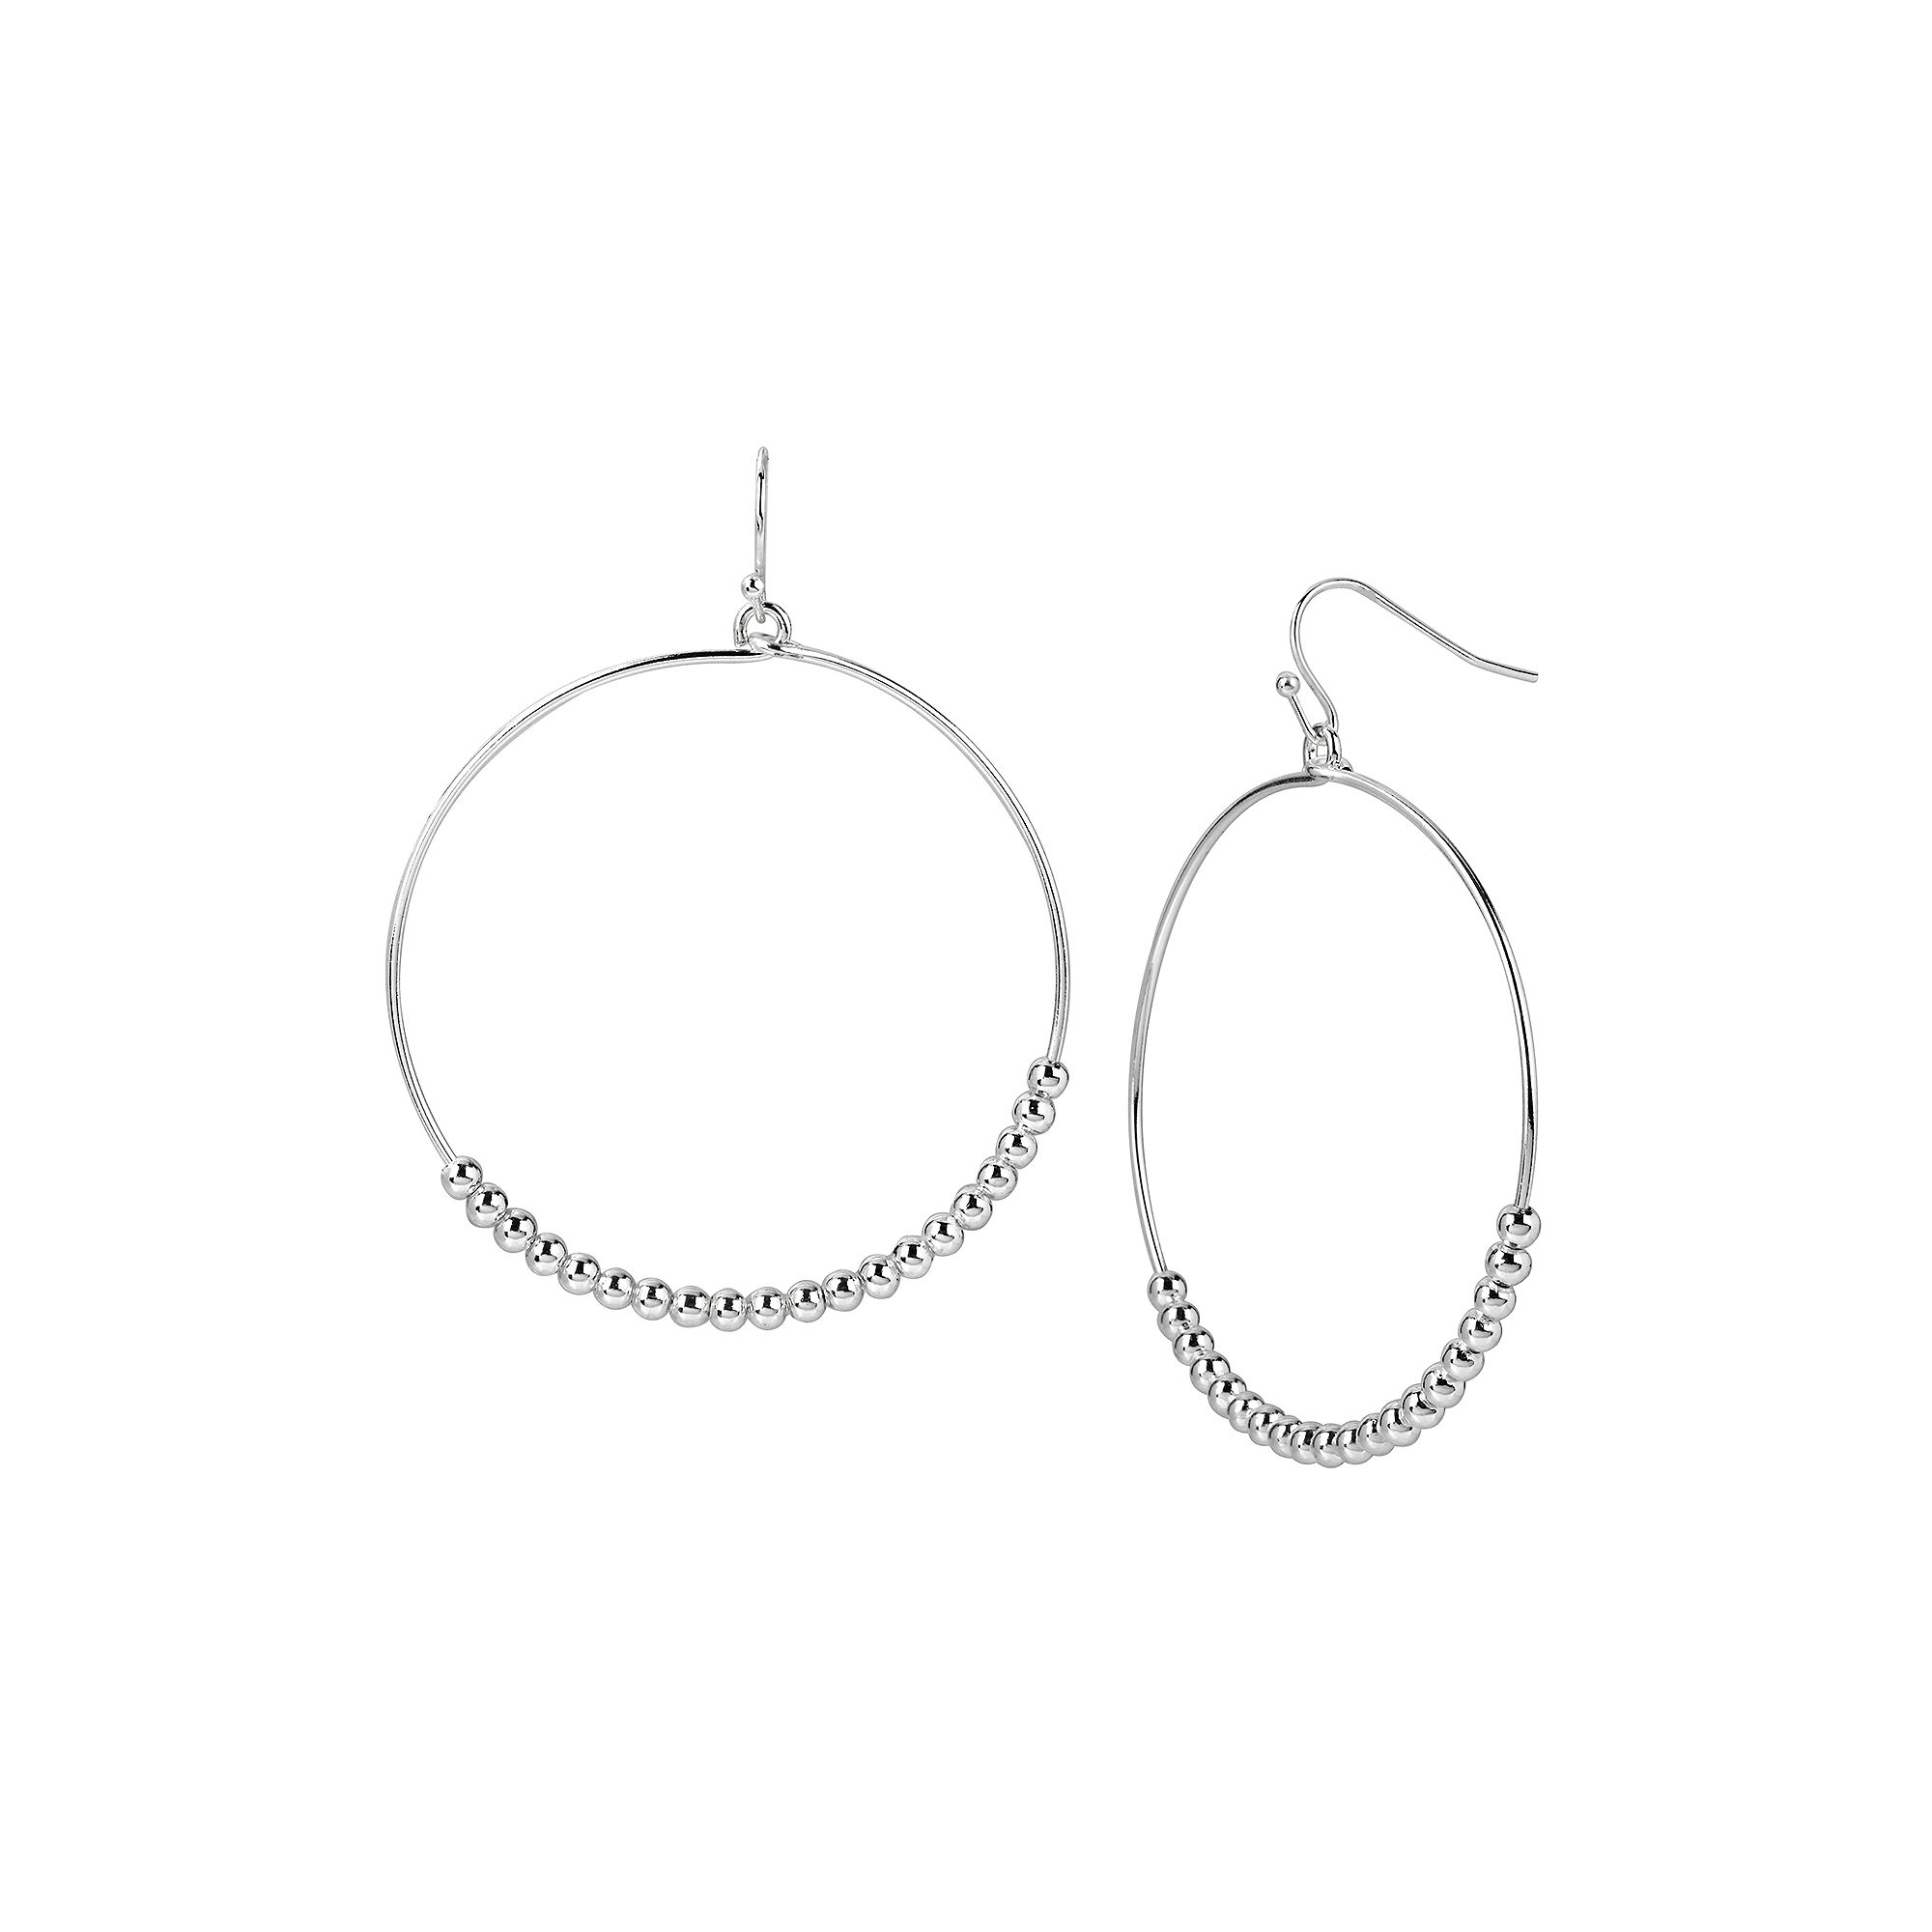 Silver Reflections™ Silver-Plated Bead Hoop Earrings